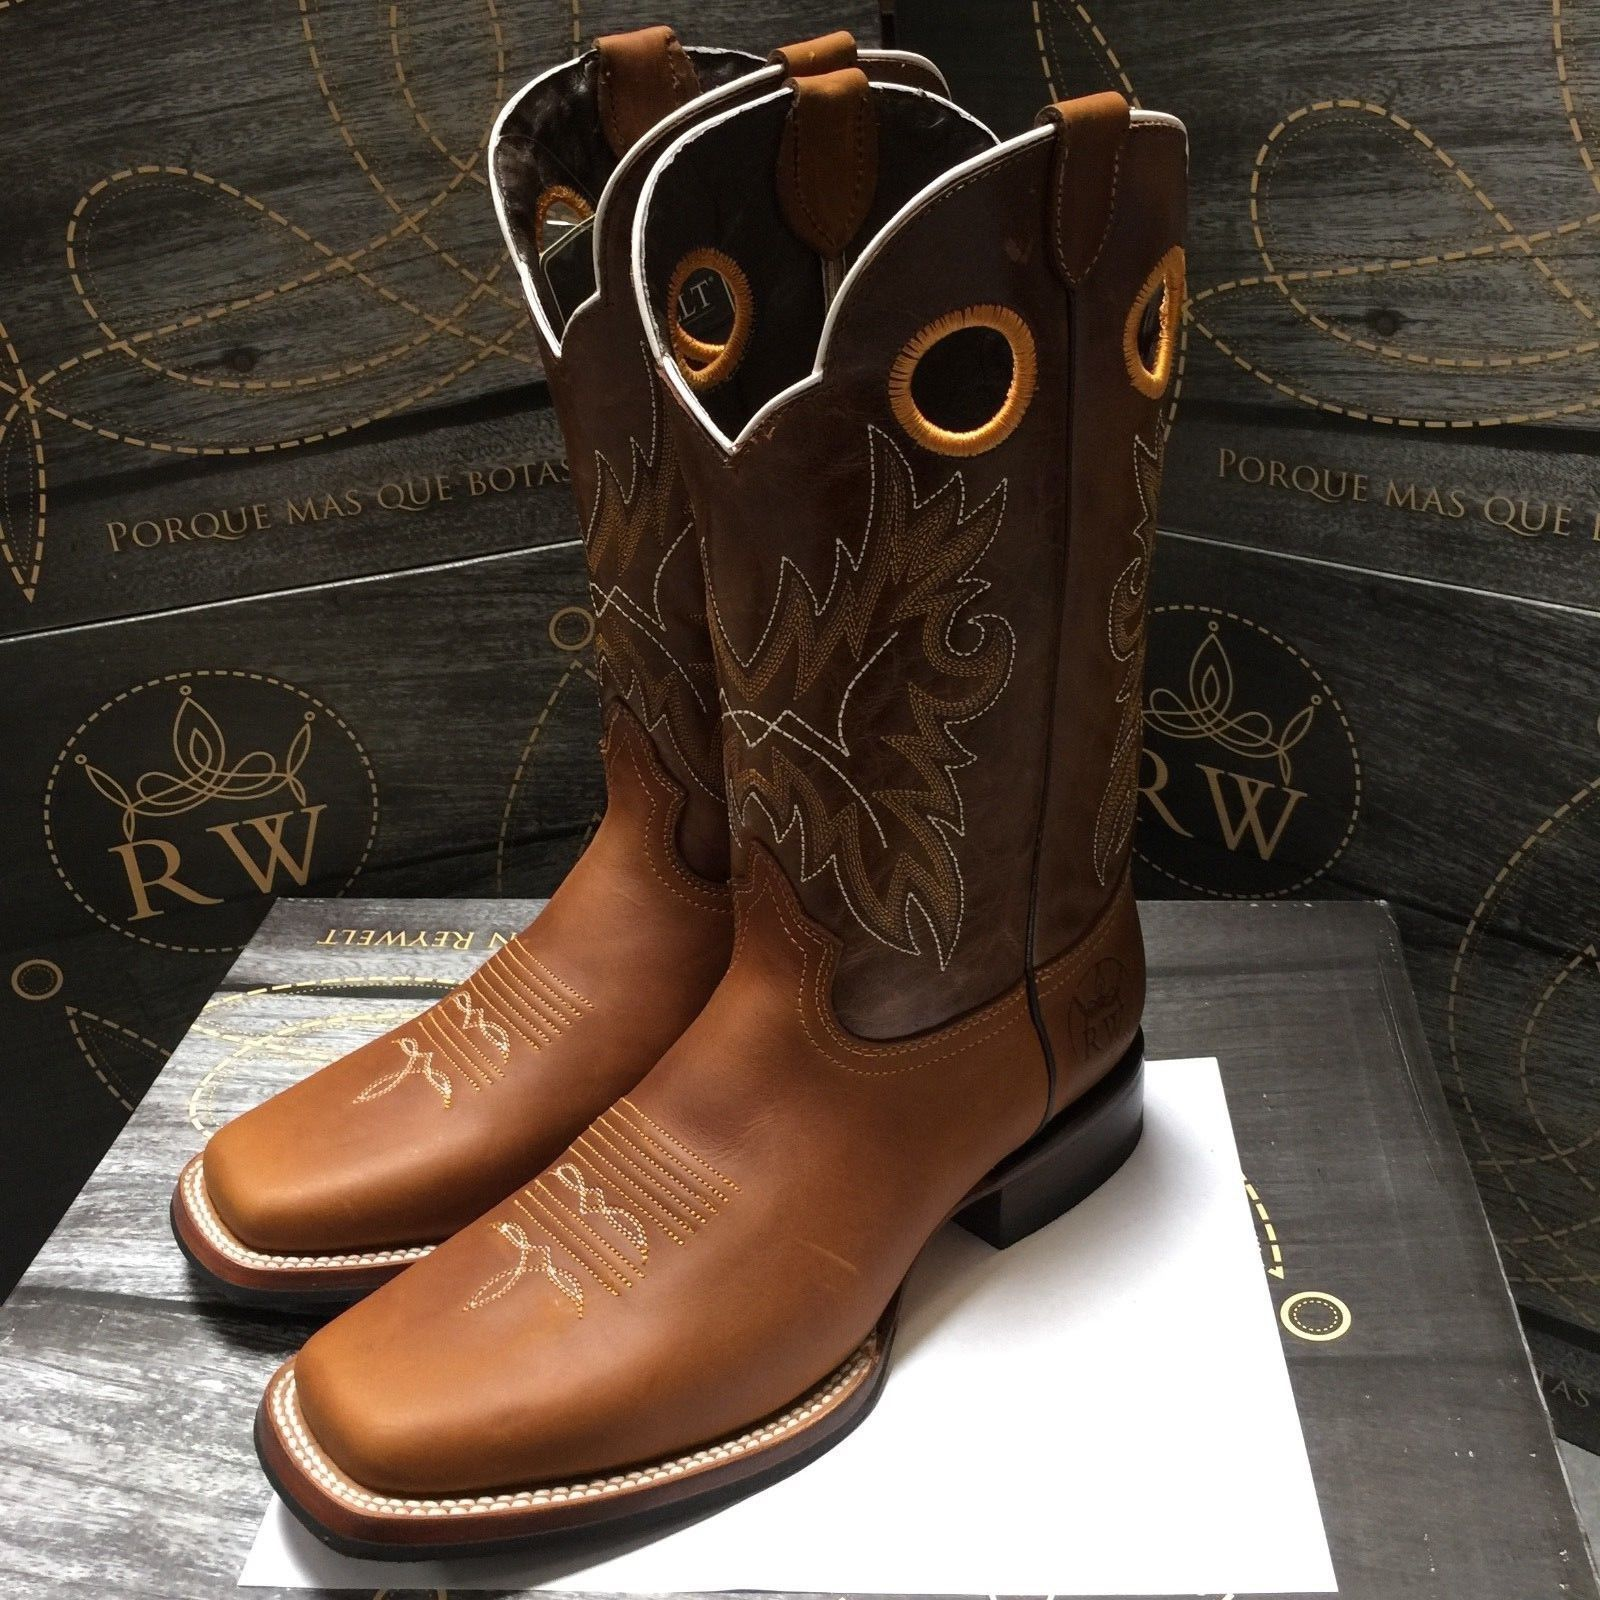 Men S Rodeo Cowboy Boots Genuine Leather Western Square Toe Boots Light Brown 85 99 End Date 2019 01 0 Light Brown Cowboy Boots Cowboy Boots Square Toe Boots